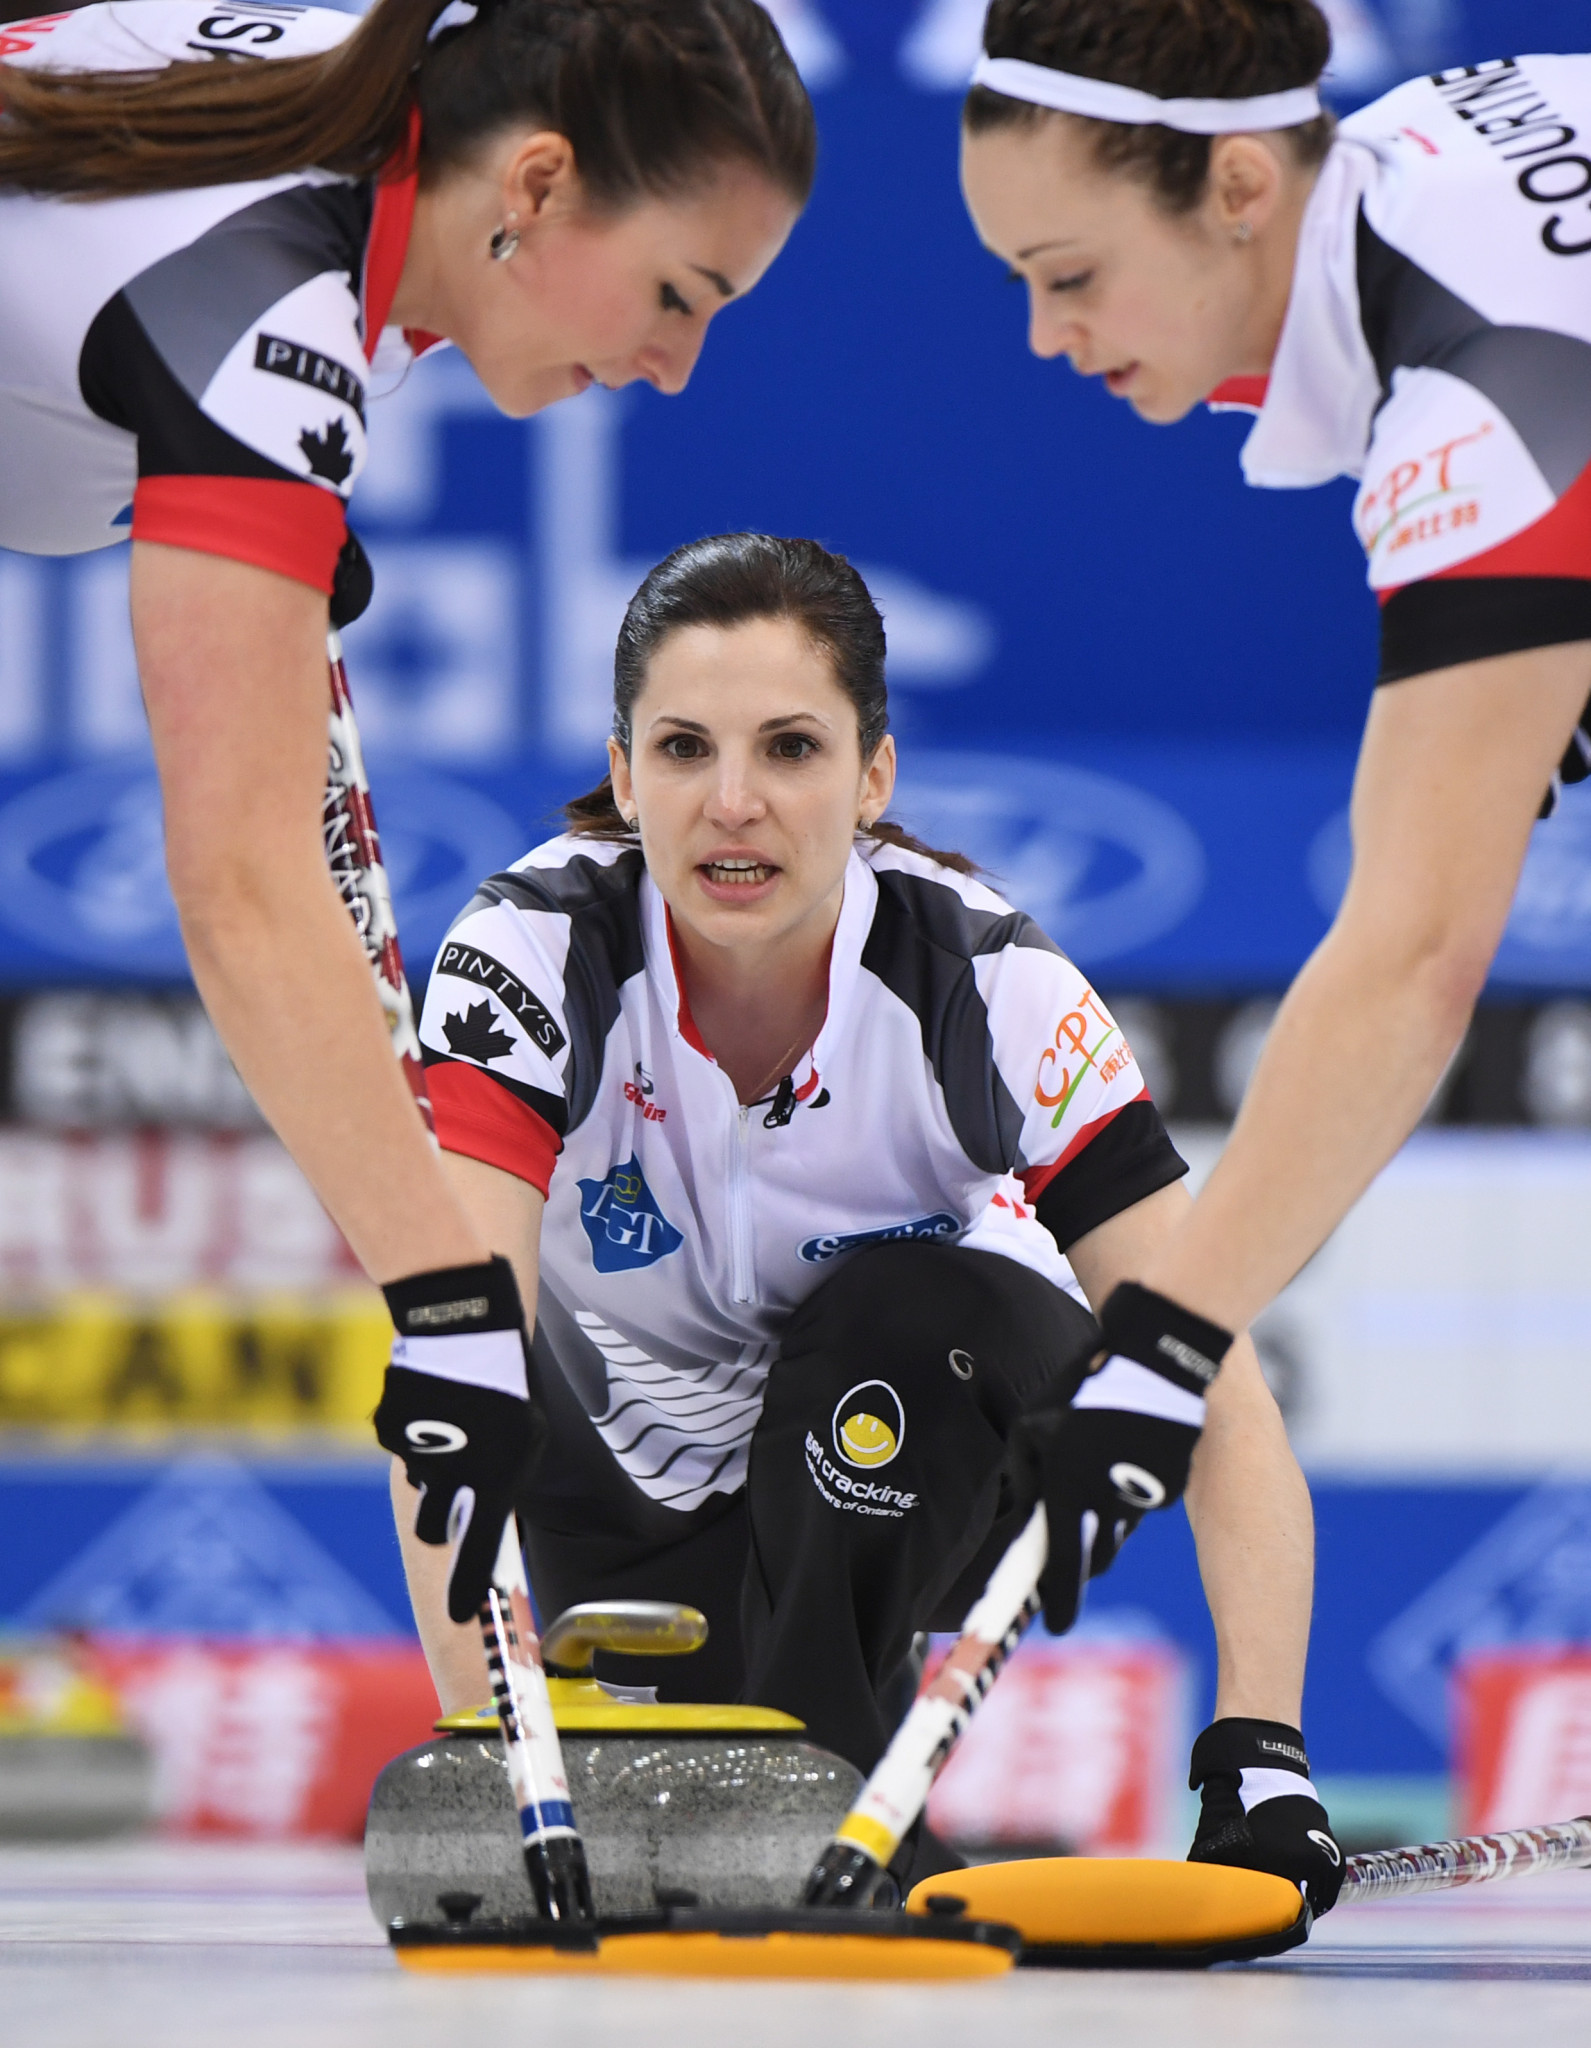 Schedule unveiled for World Women's Curling Championship in North Bay